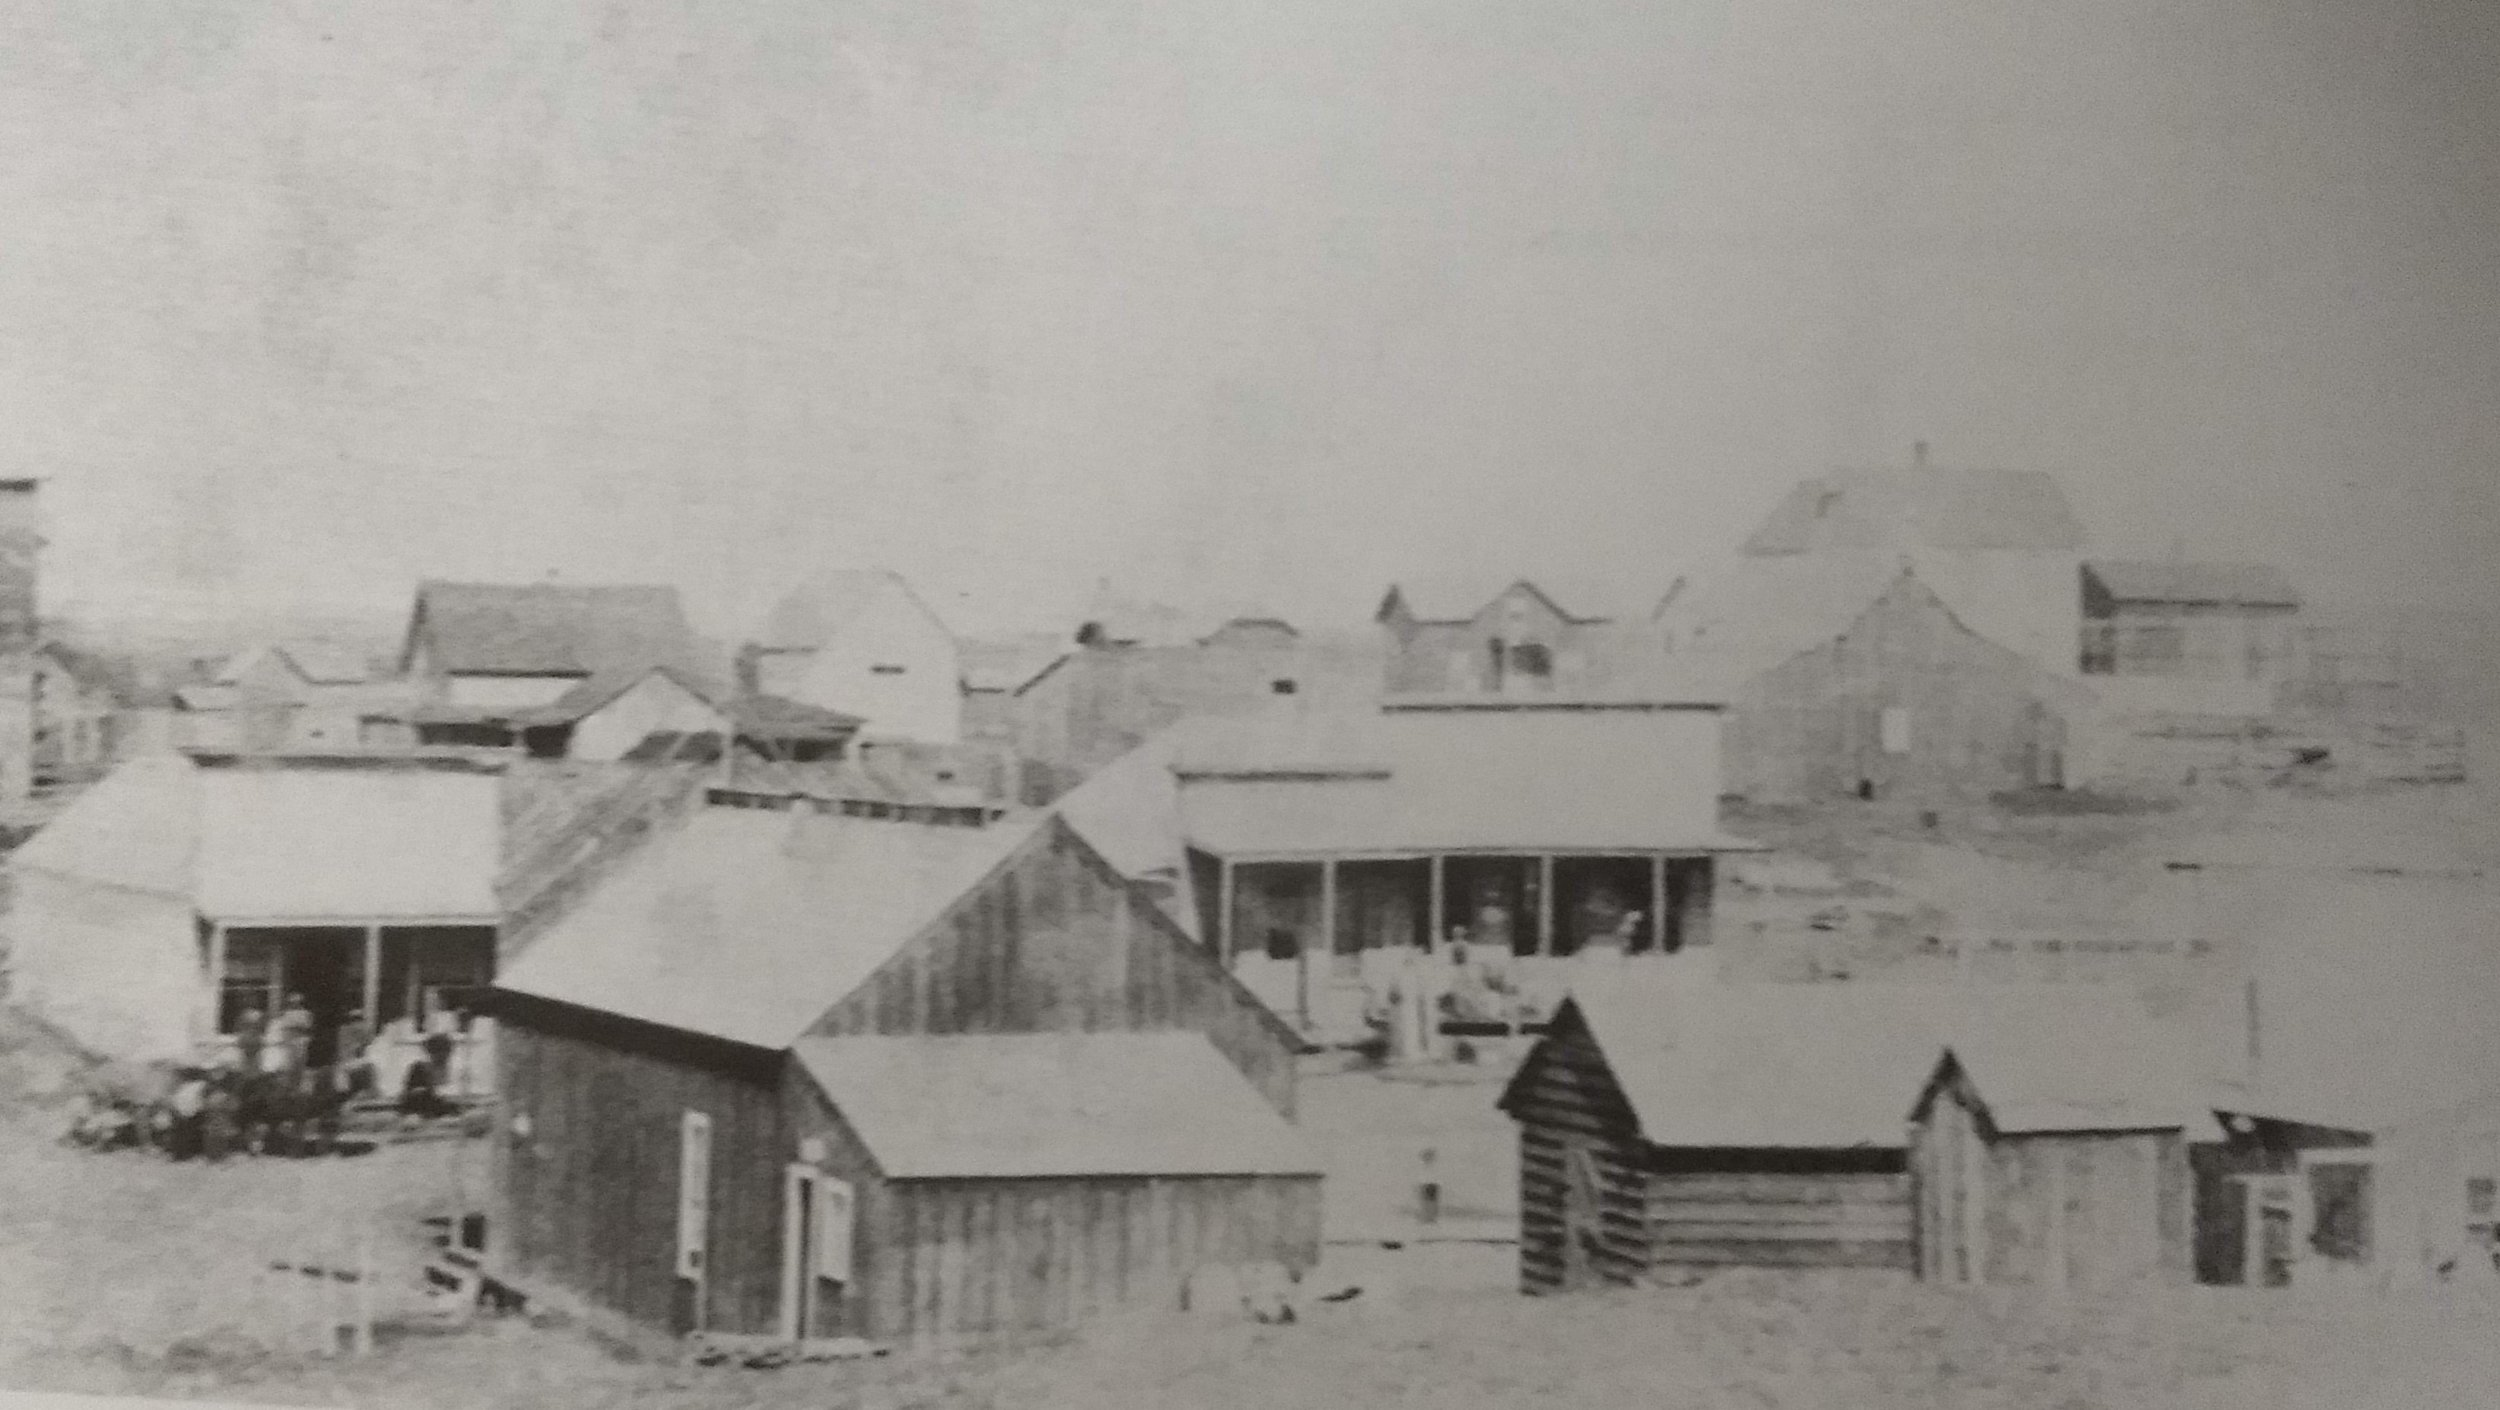 Main Street Condon, OR circa 1890.